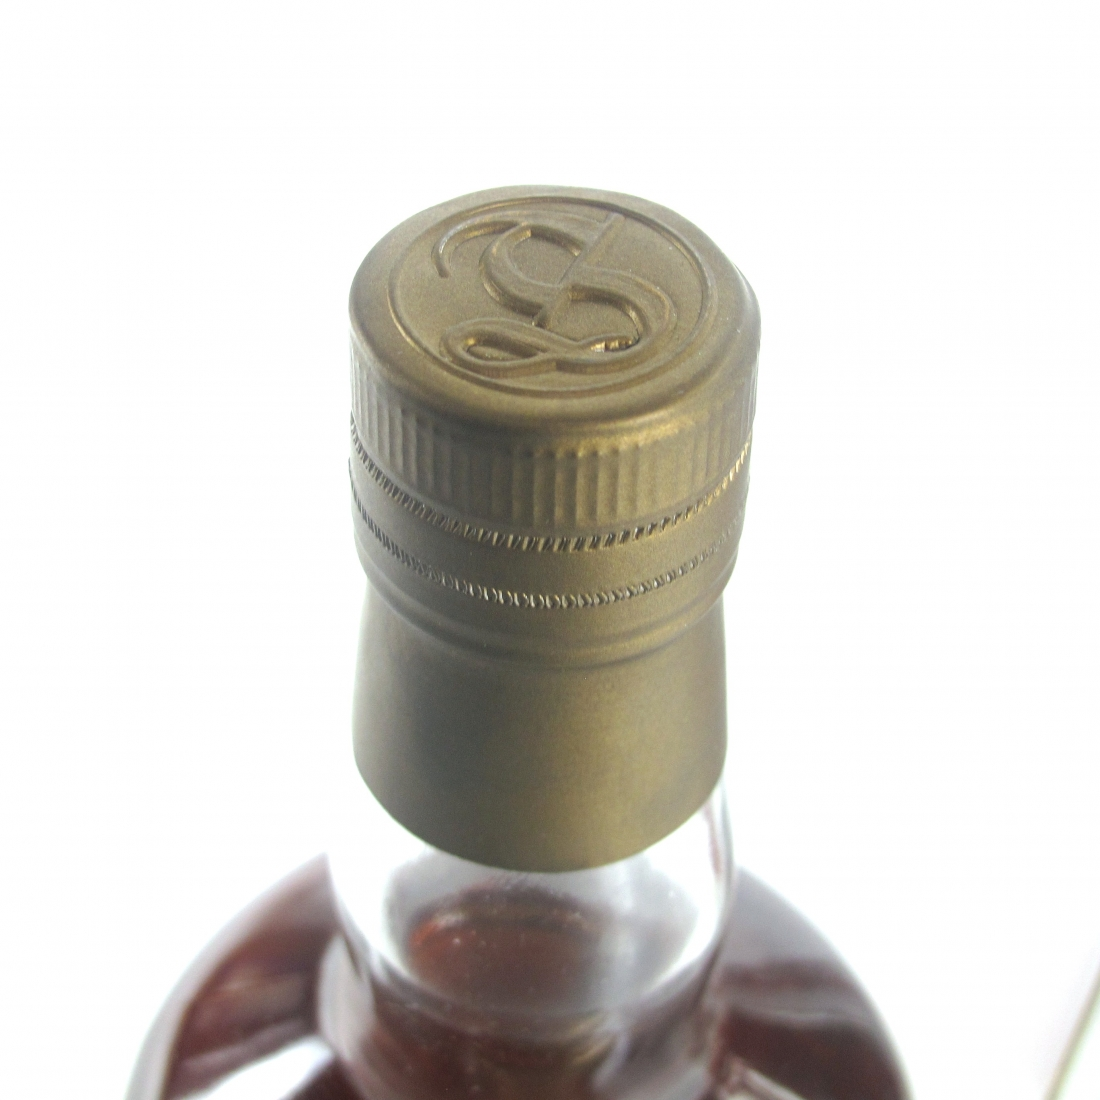 Springbank 21 Year Old 75cl